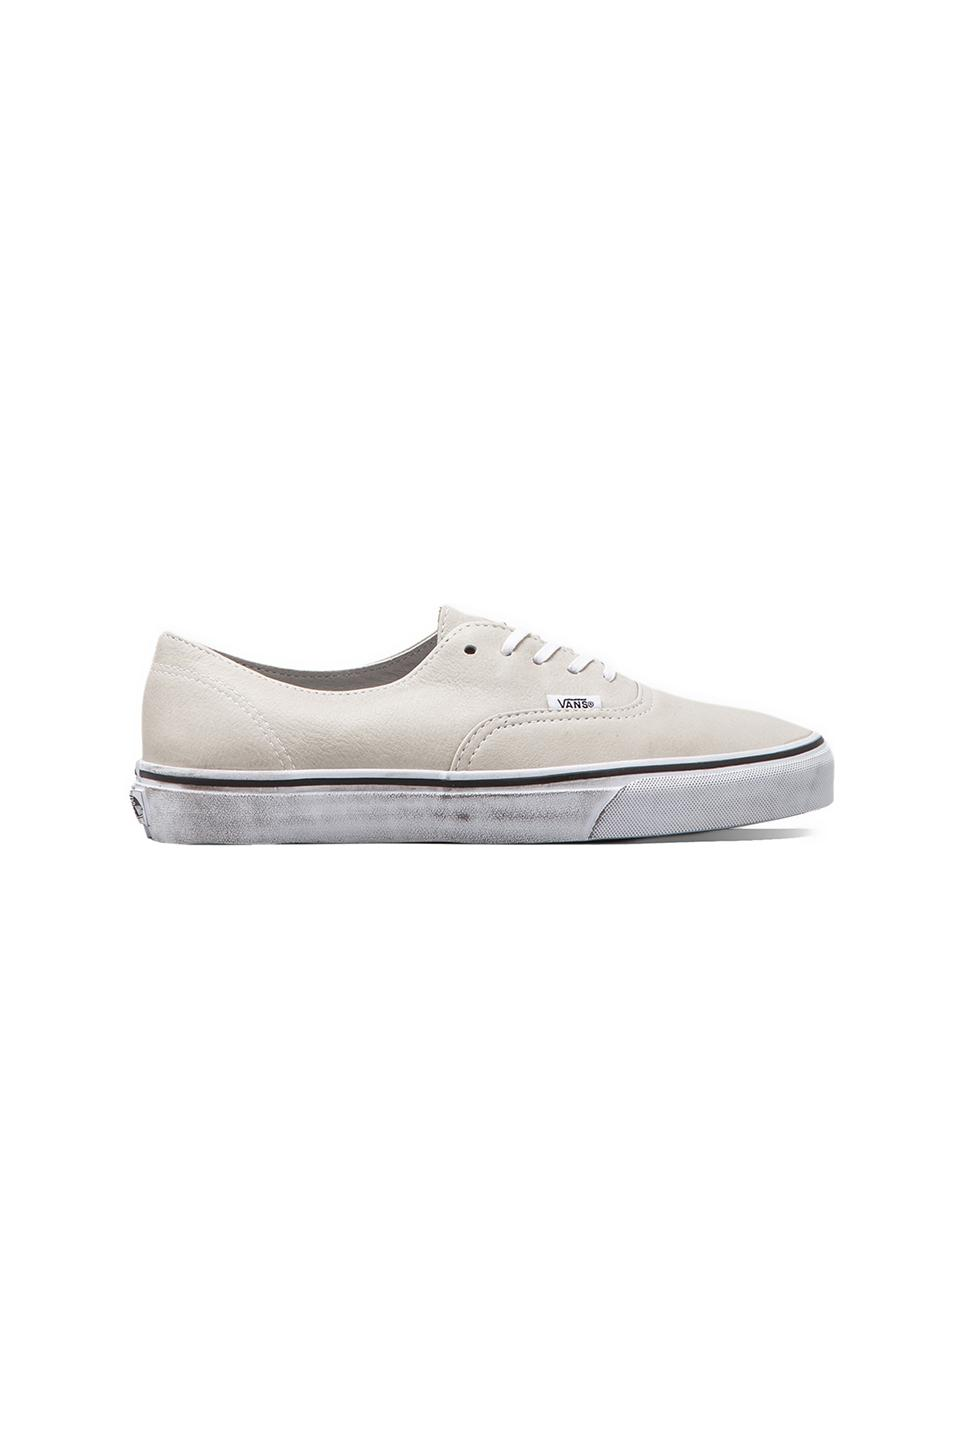 Vans California Authentic Decon Distressed in White